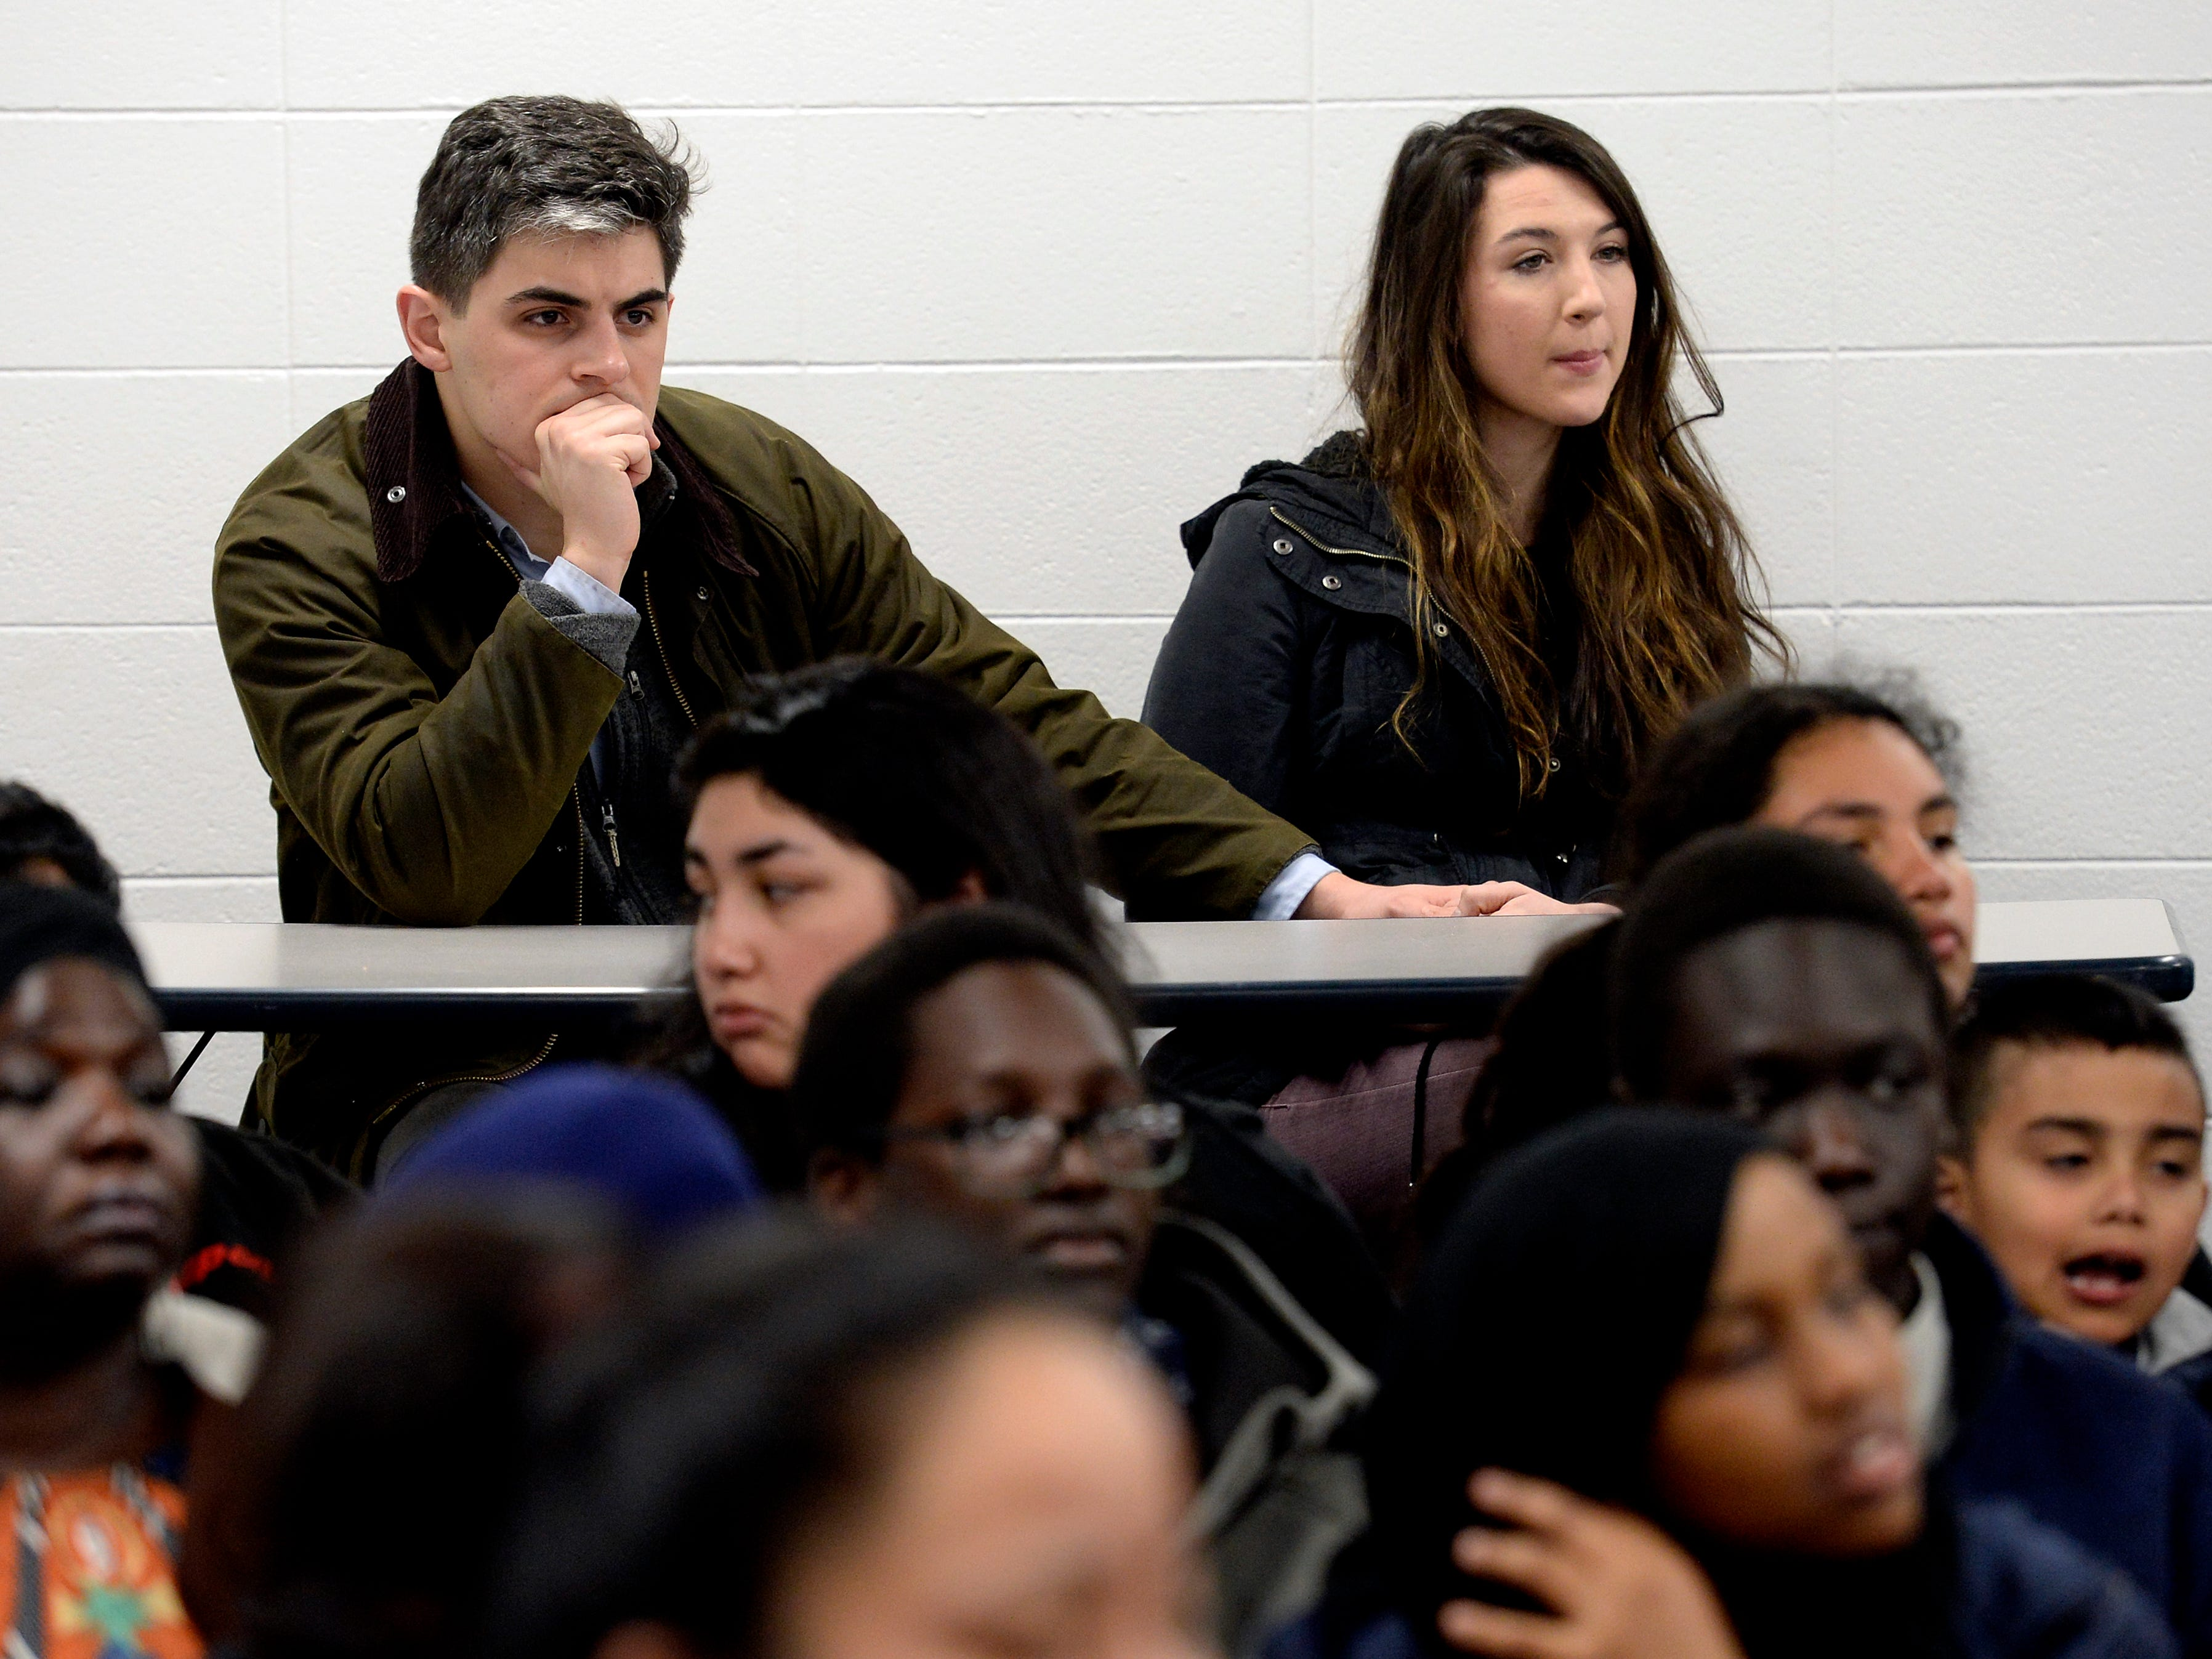 Parents and children listen to speakers during a parent meeting about New Vision Academy charter school on Thursday, March 7, 2019 in Nashville, Tenn.